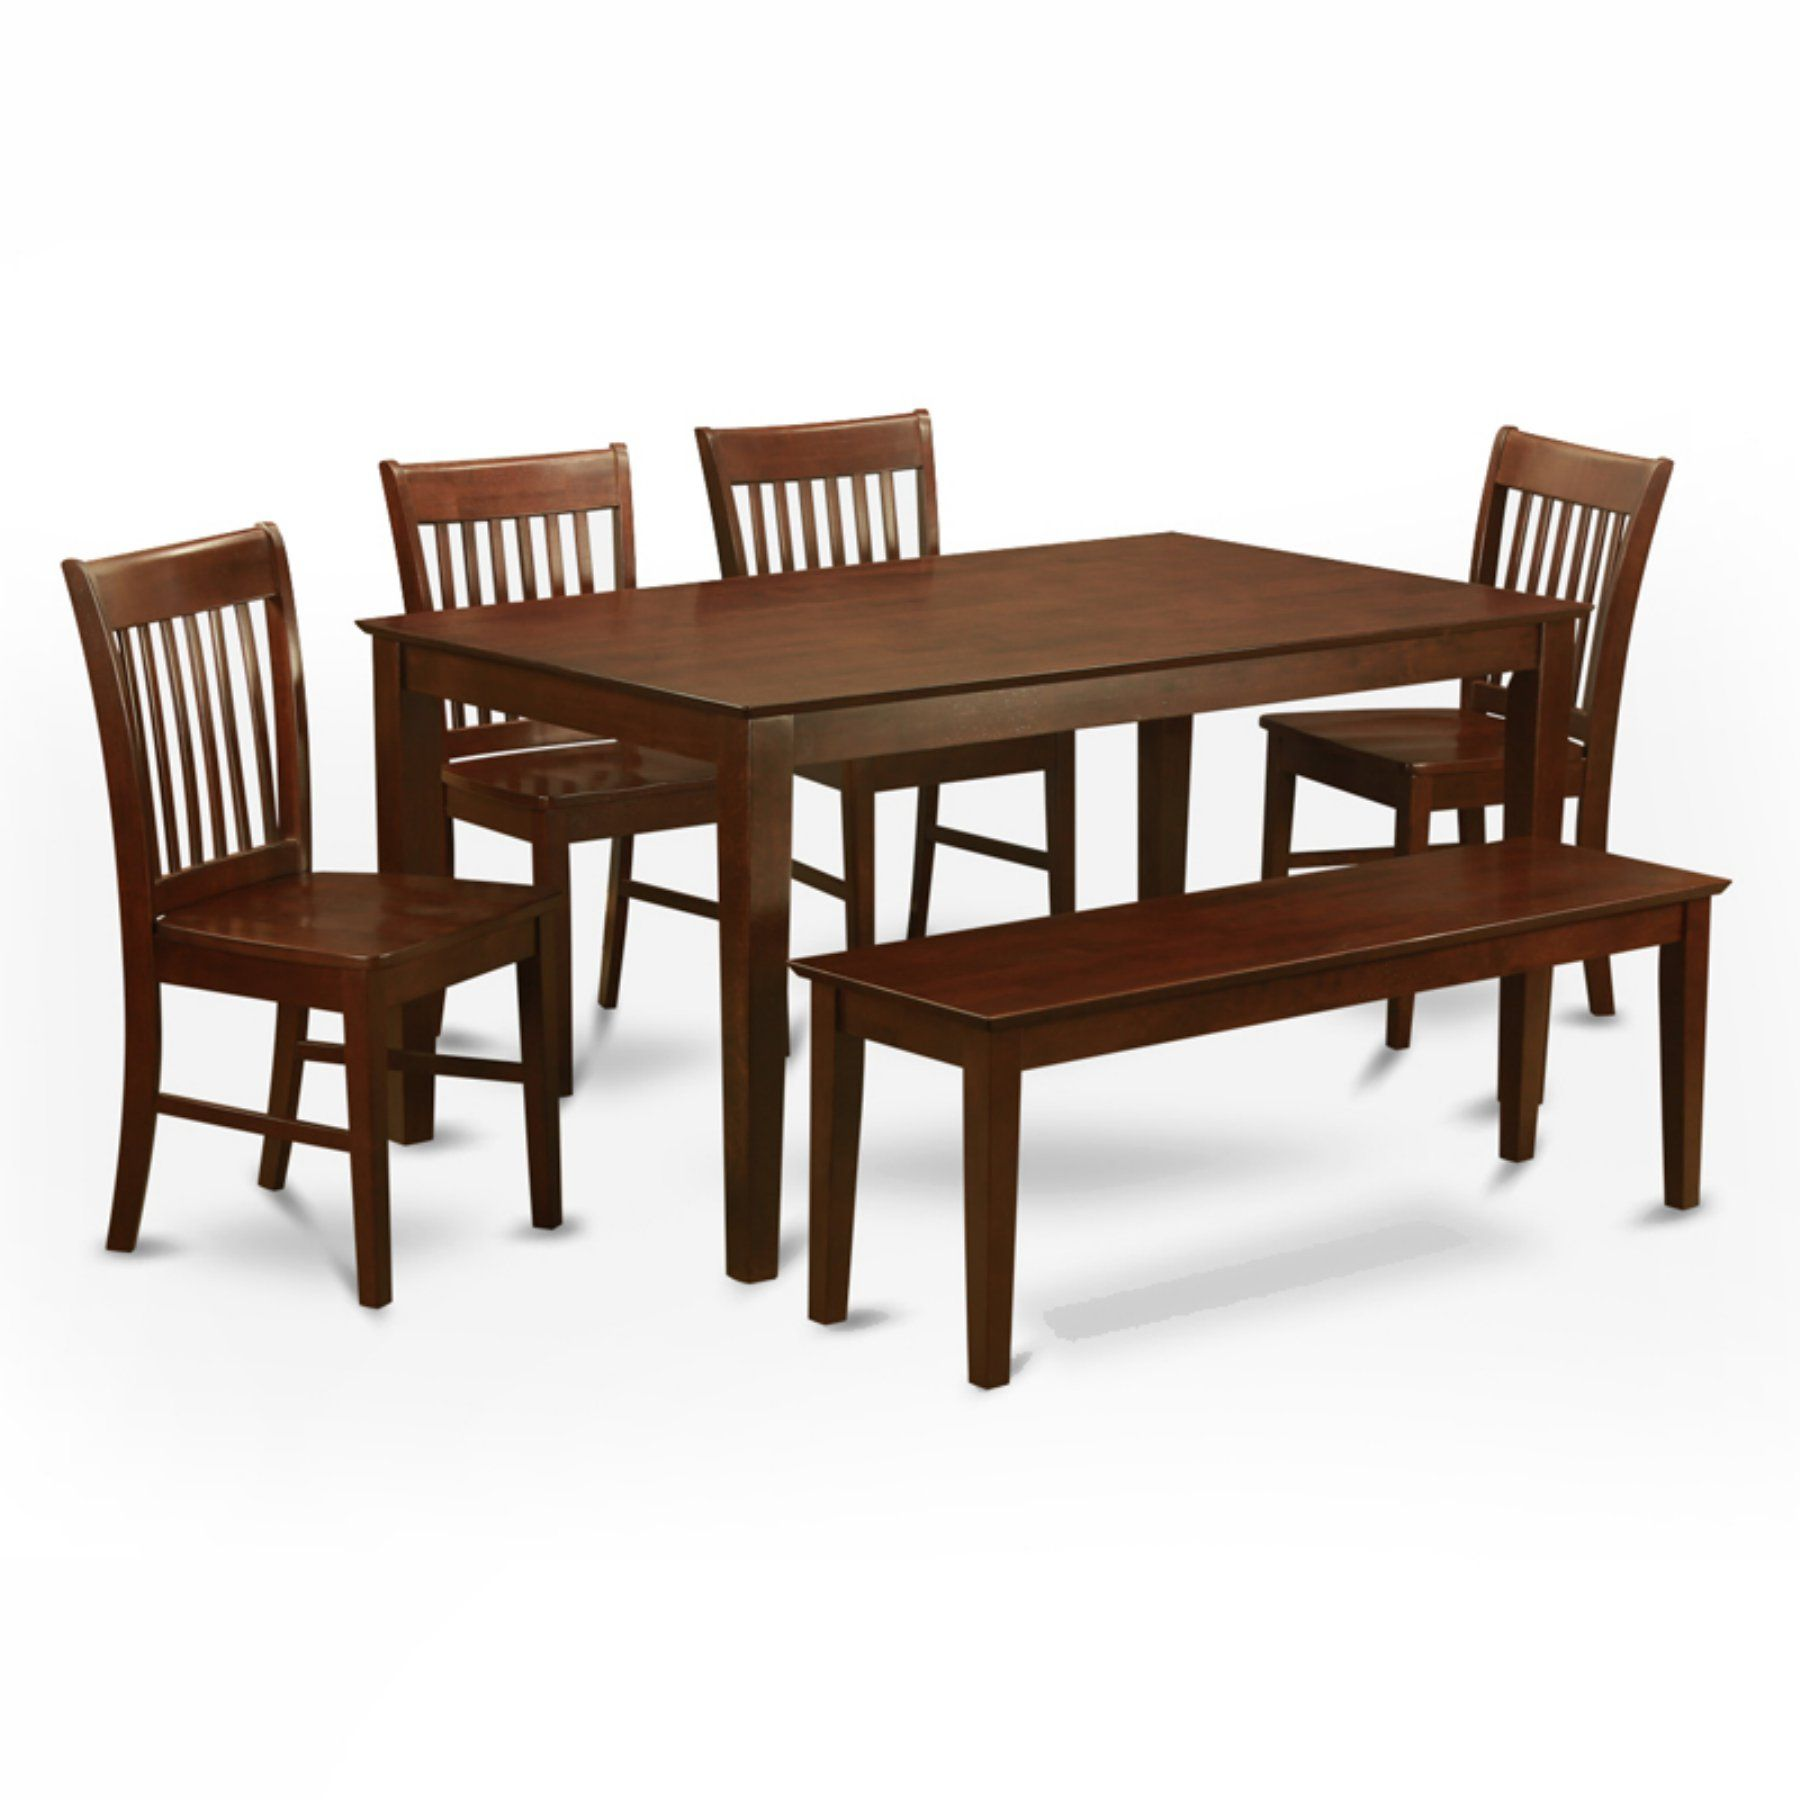 East West Furniture Capris 6 Piece Rectangular Dining Table Set Best Wooden Bench For Dining Room Table Decorating Inspiration